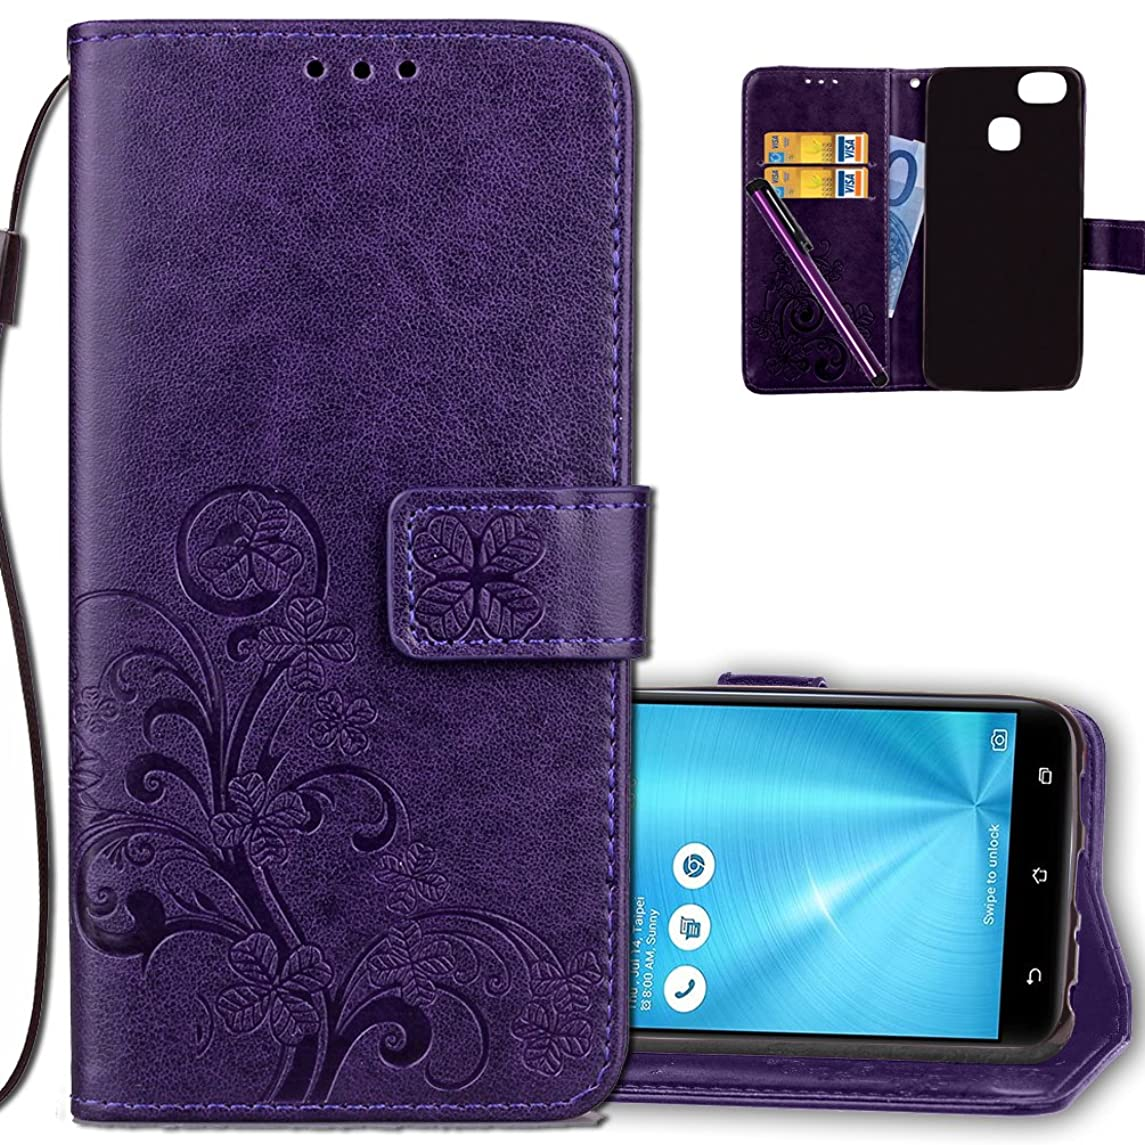 Asus ZenFone 3 Zoom Wallet Case Leather COTDINFORCA Premium PU Embossed Design Magnetic Closure Protective Cover with Card Slots for Asus ZenFone 3 Zoom (ZE553KL). Luck Clover Purple